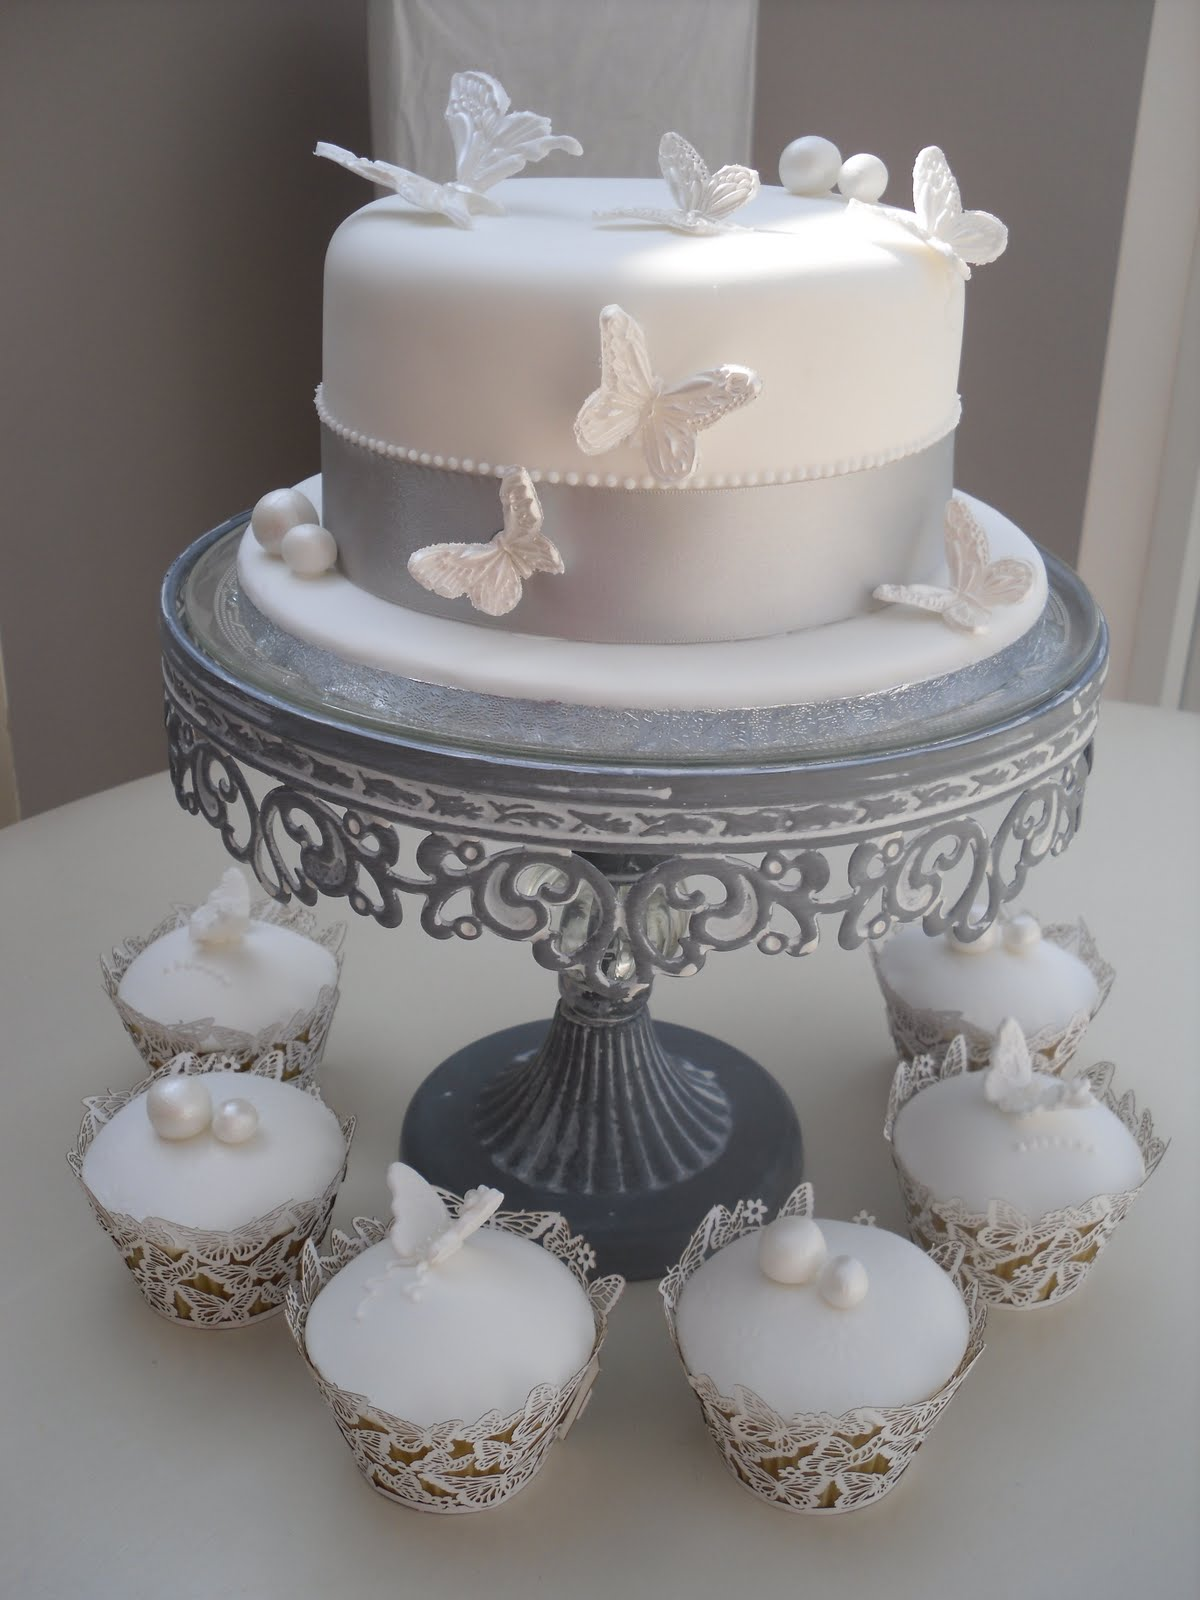 Katies cupcakes 30th pearl wedding anniversary for 30th wedding anniversary decoration ideas